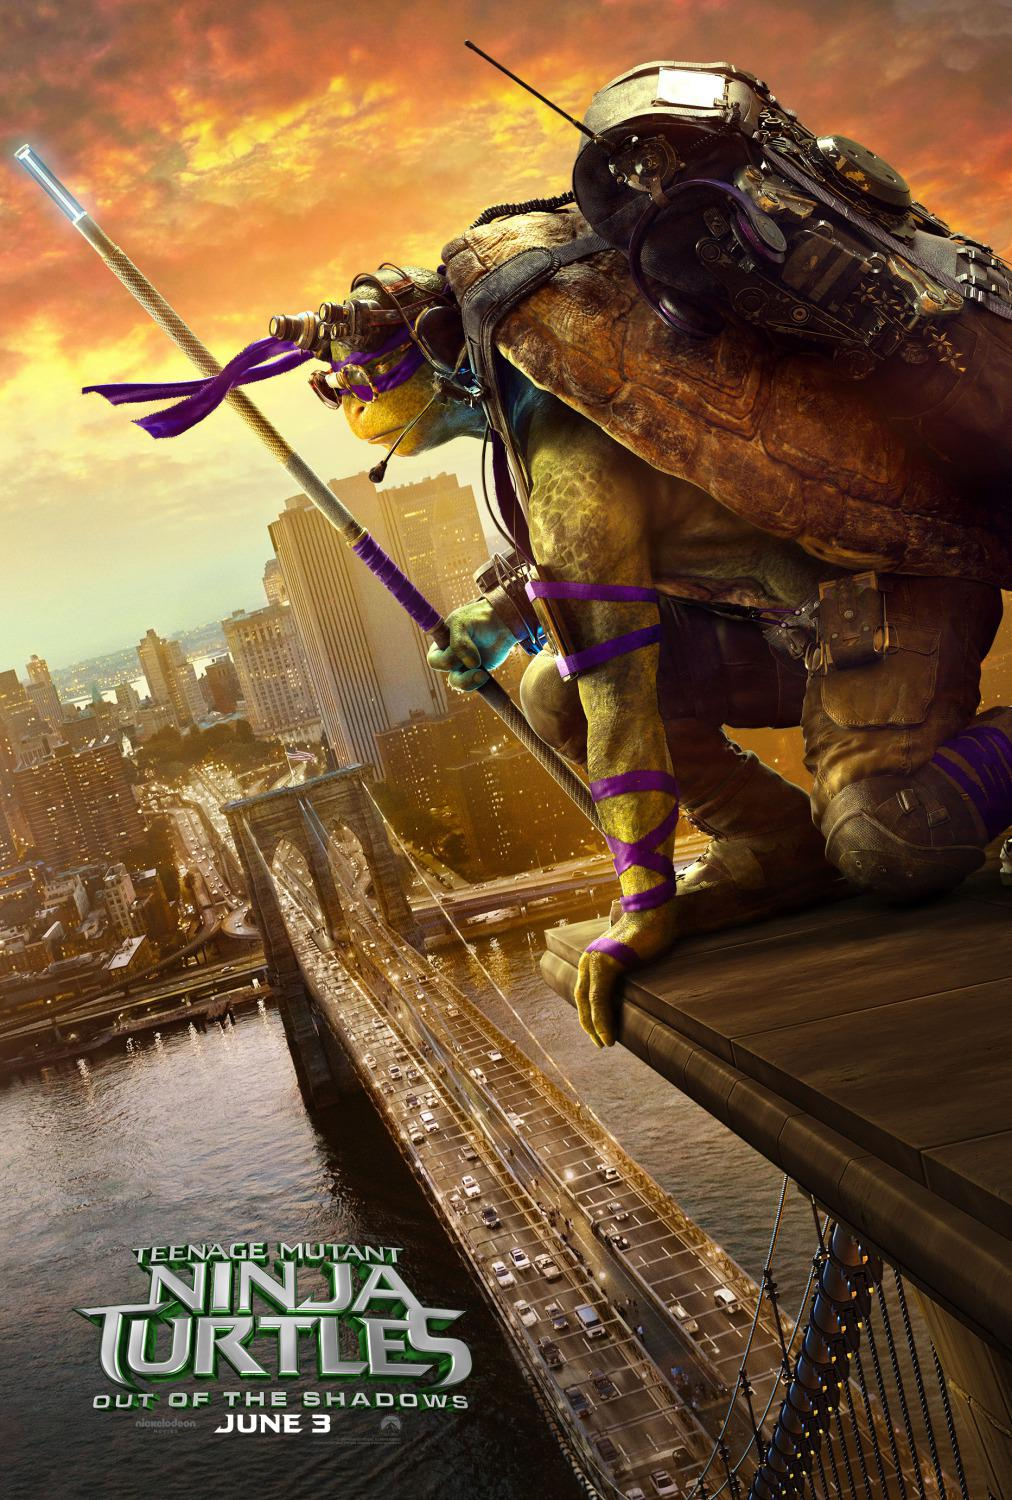 TMNT - Teenage Mutant Ninja Turtles out of the Shadows - Fuori dall'Ombra (2016)